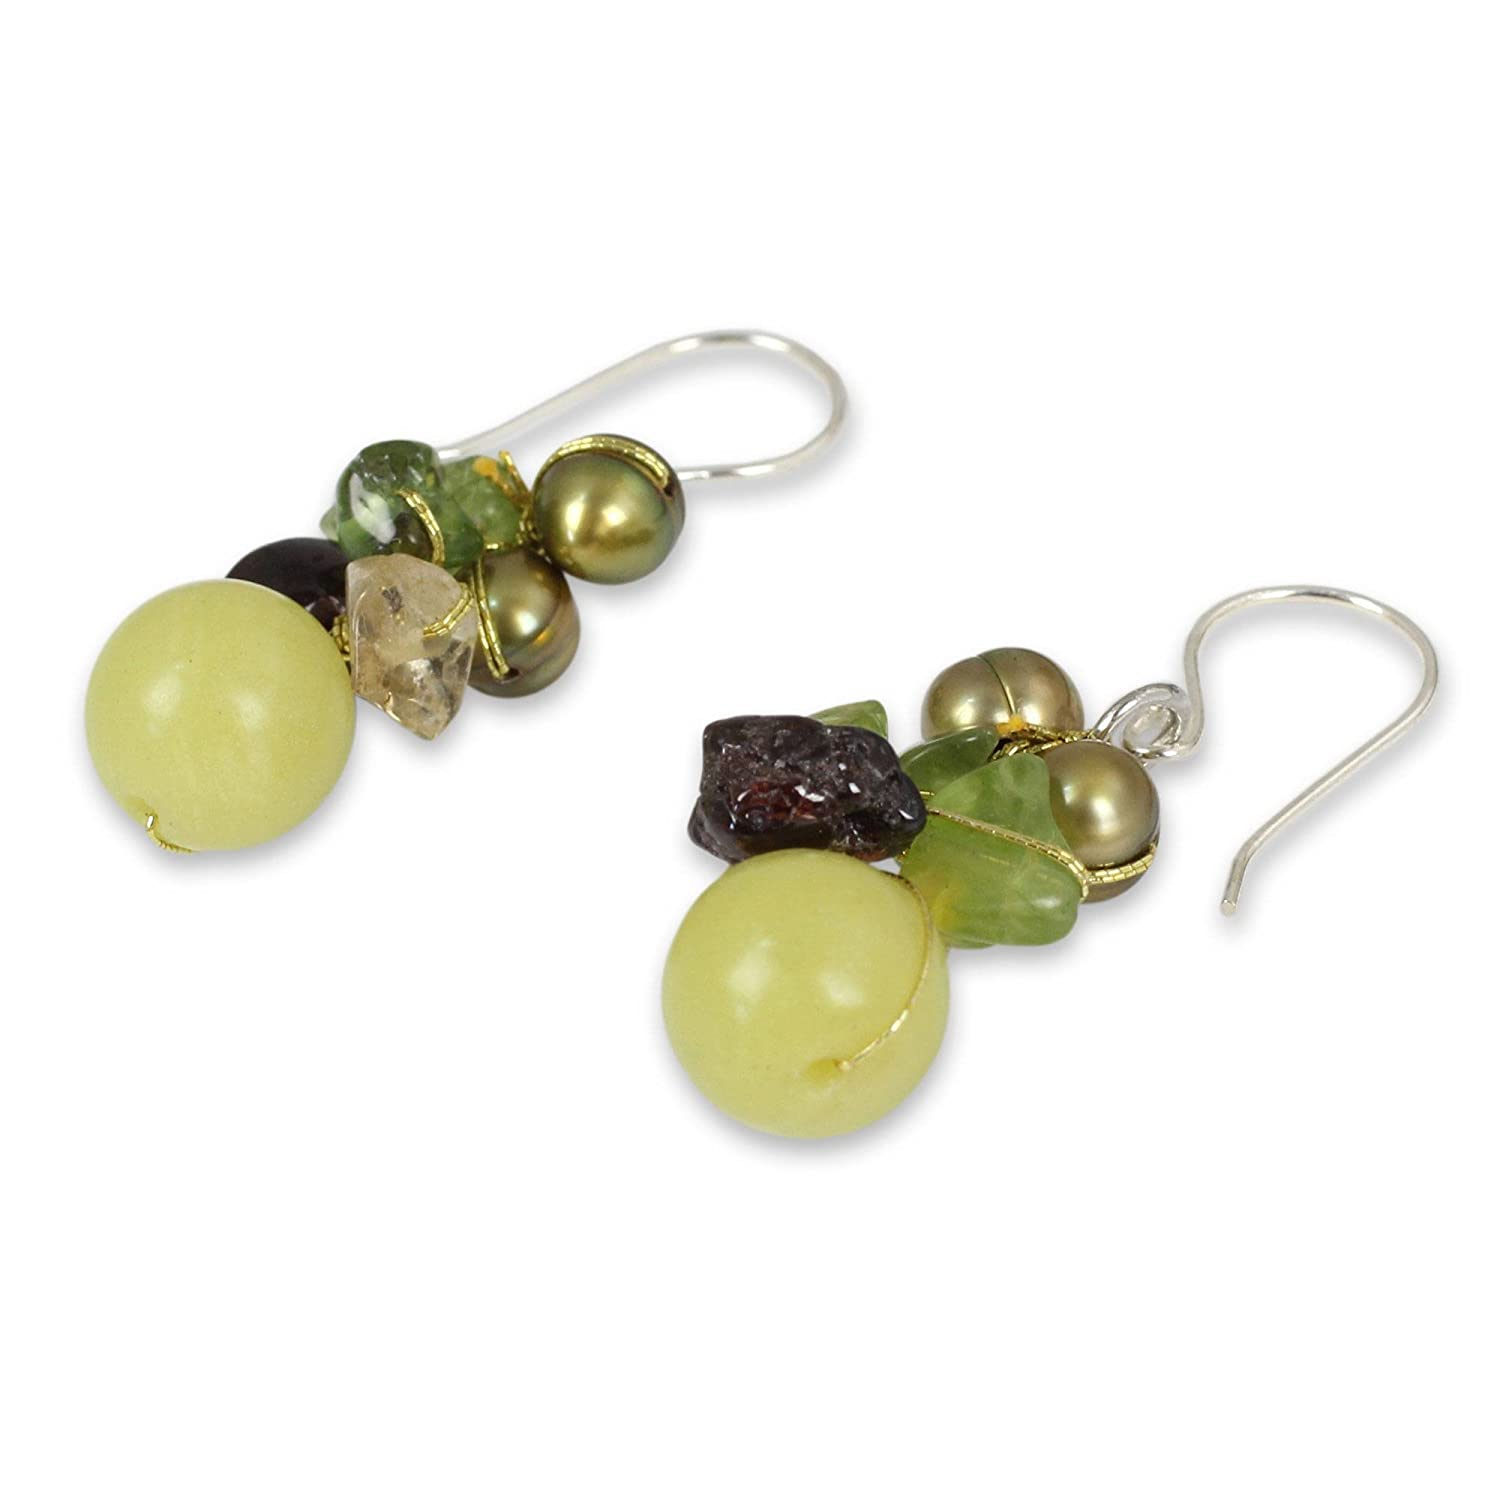 NOVICA Multi-gem Dyed Cultured Freshwater Pearl .925 Sterling Silver Cluster Earrings, Freshness